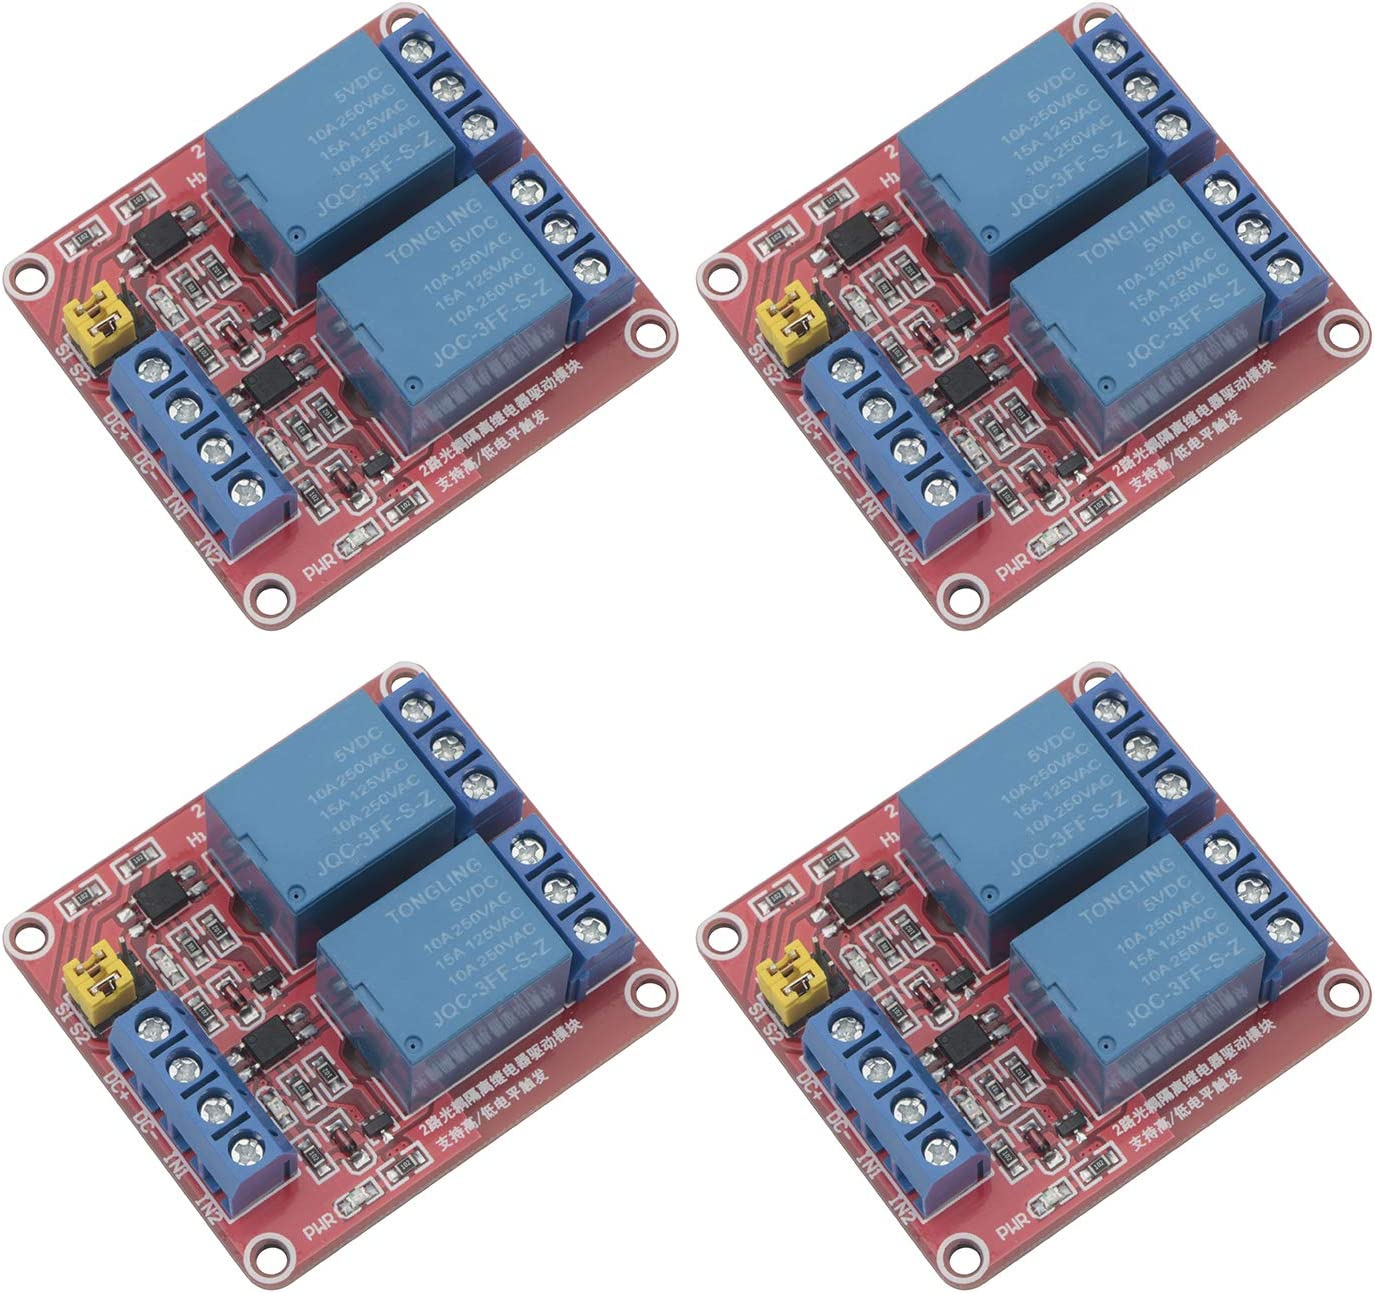 SenMod 4PCS 5V 2-Channel Optical Module isolation Max 49% OFF coupling Relay Award-winning store